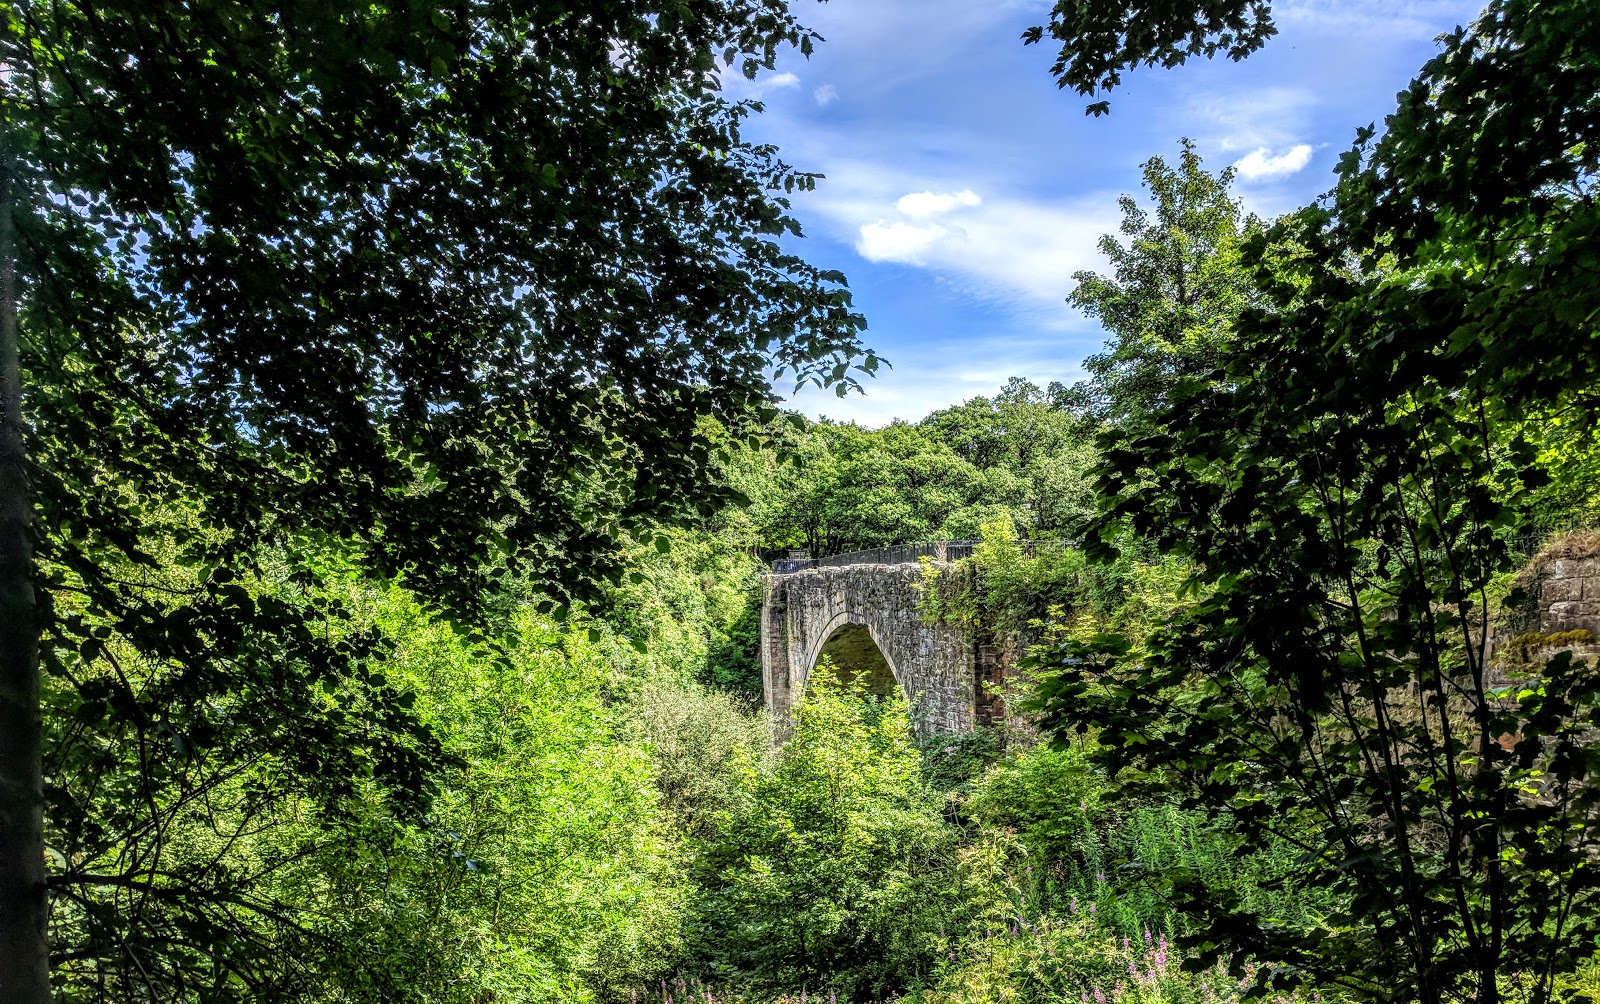 Tanfield Railway | Britain's Oldest Railway & a Picnic at Causey Arch - causey arch bridge